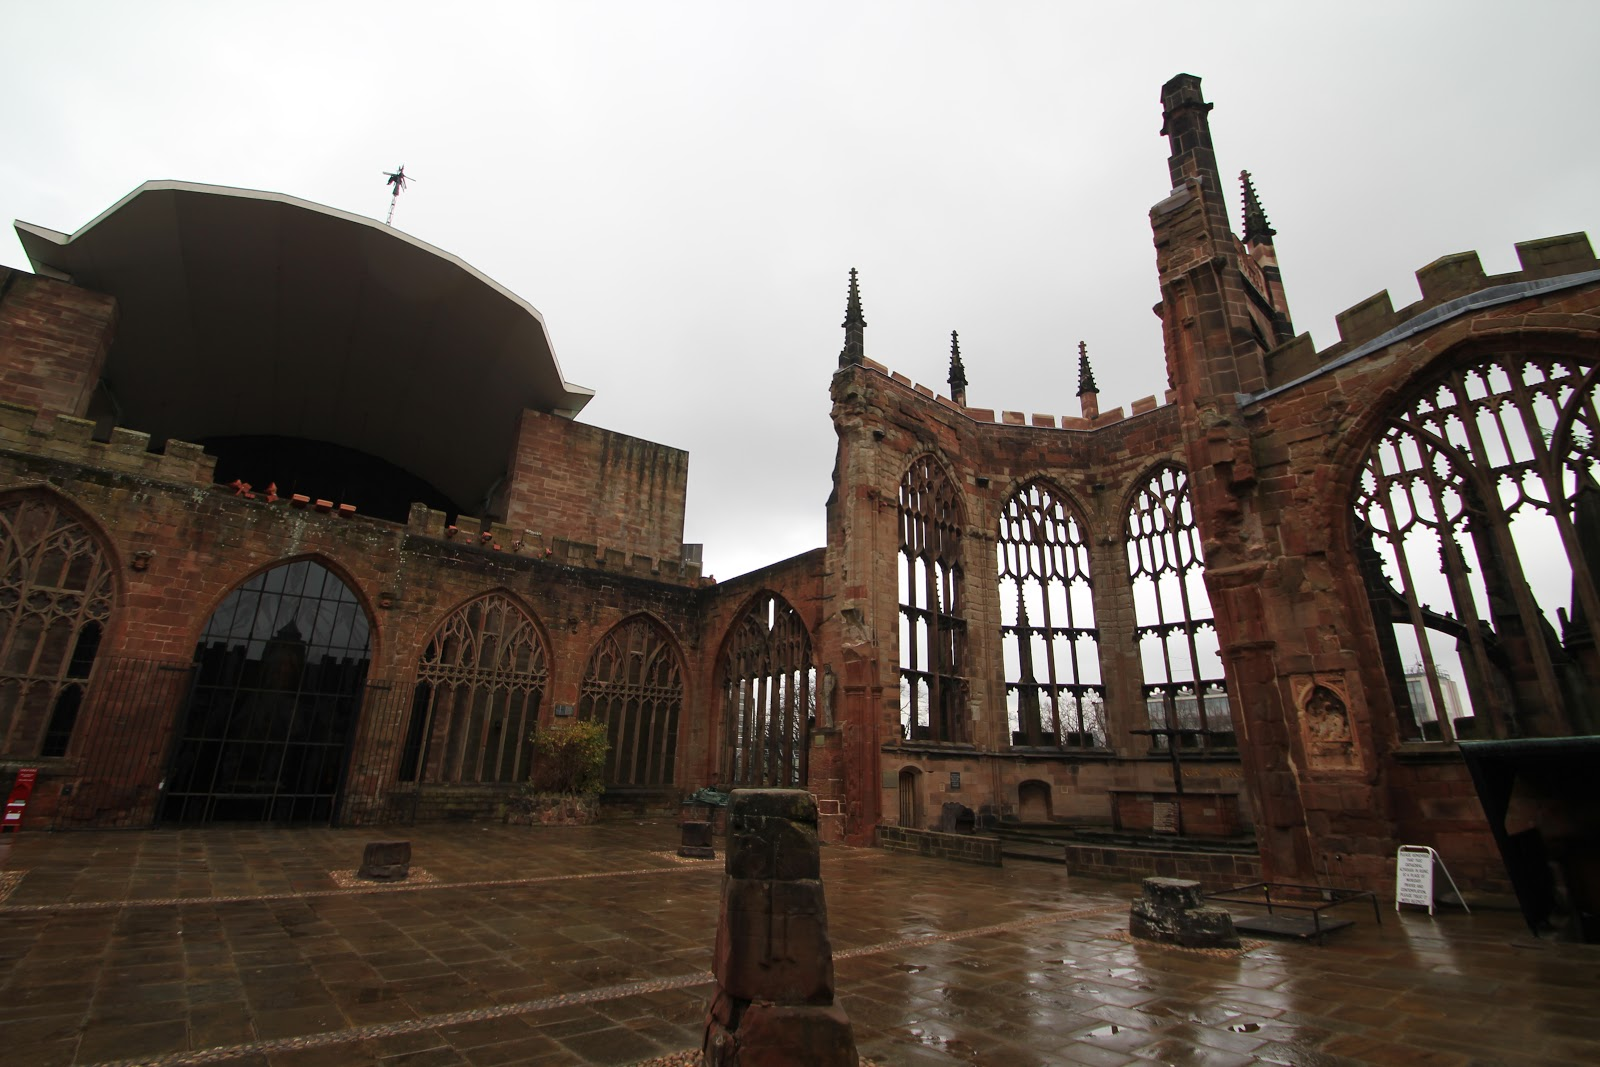 An architectural pilgrimage coventry cathedral for The coventry